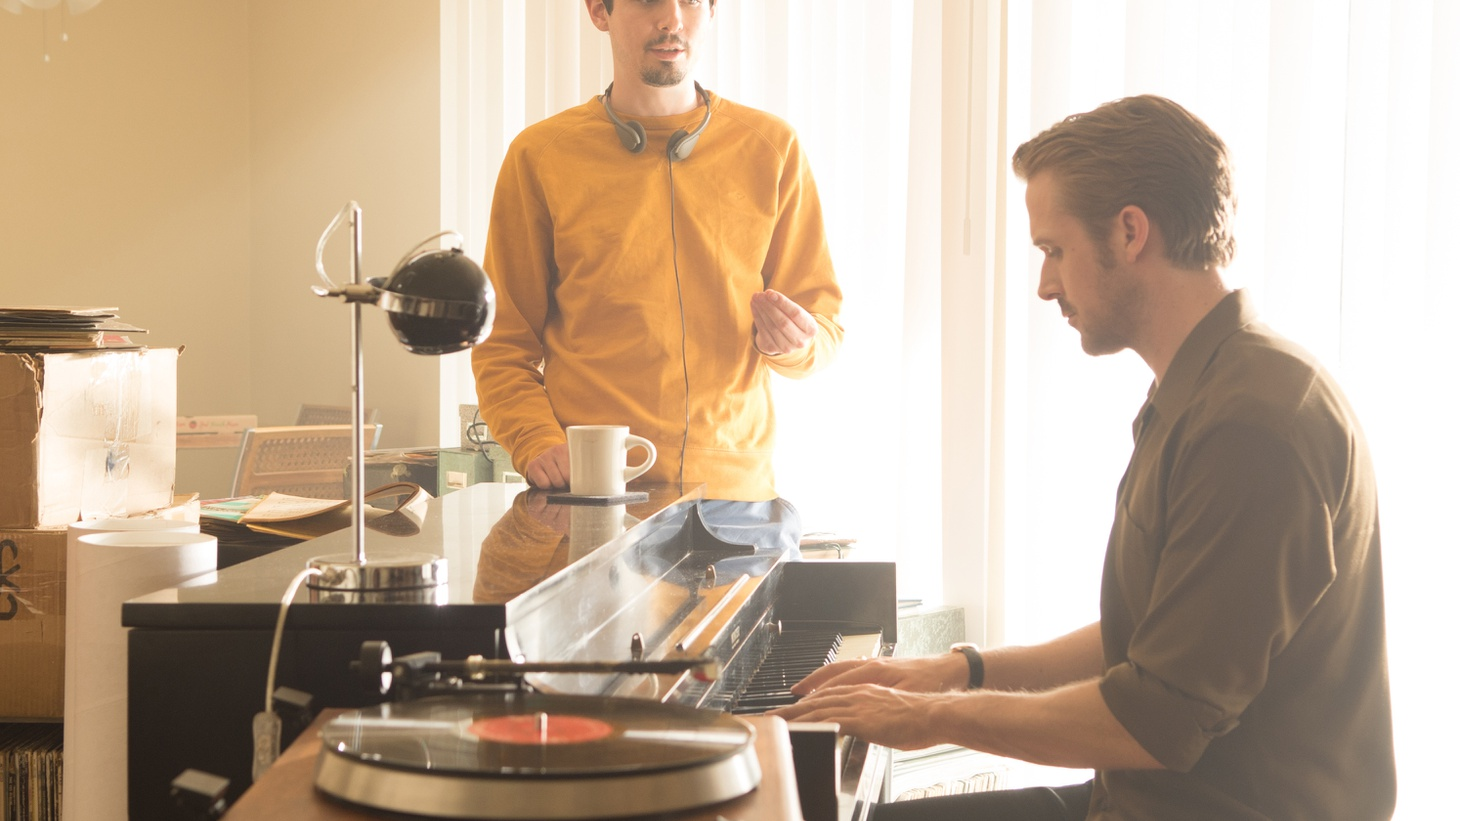 Actor Ryan Gosling and director Damien Chazelle join Elvis today to discuss keeping the musical La La Land uplifting.